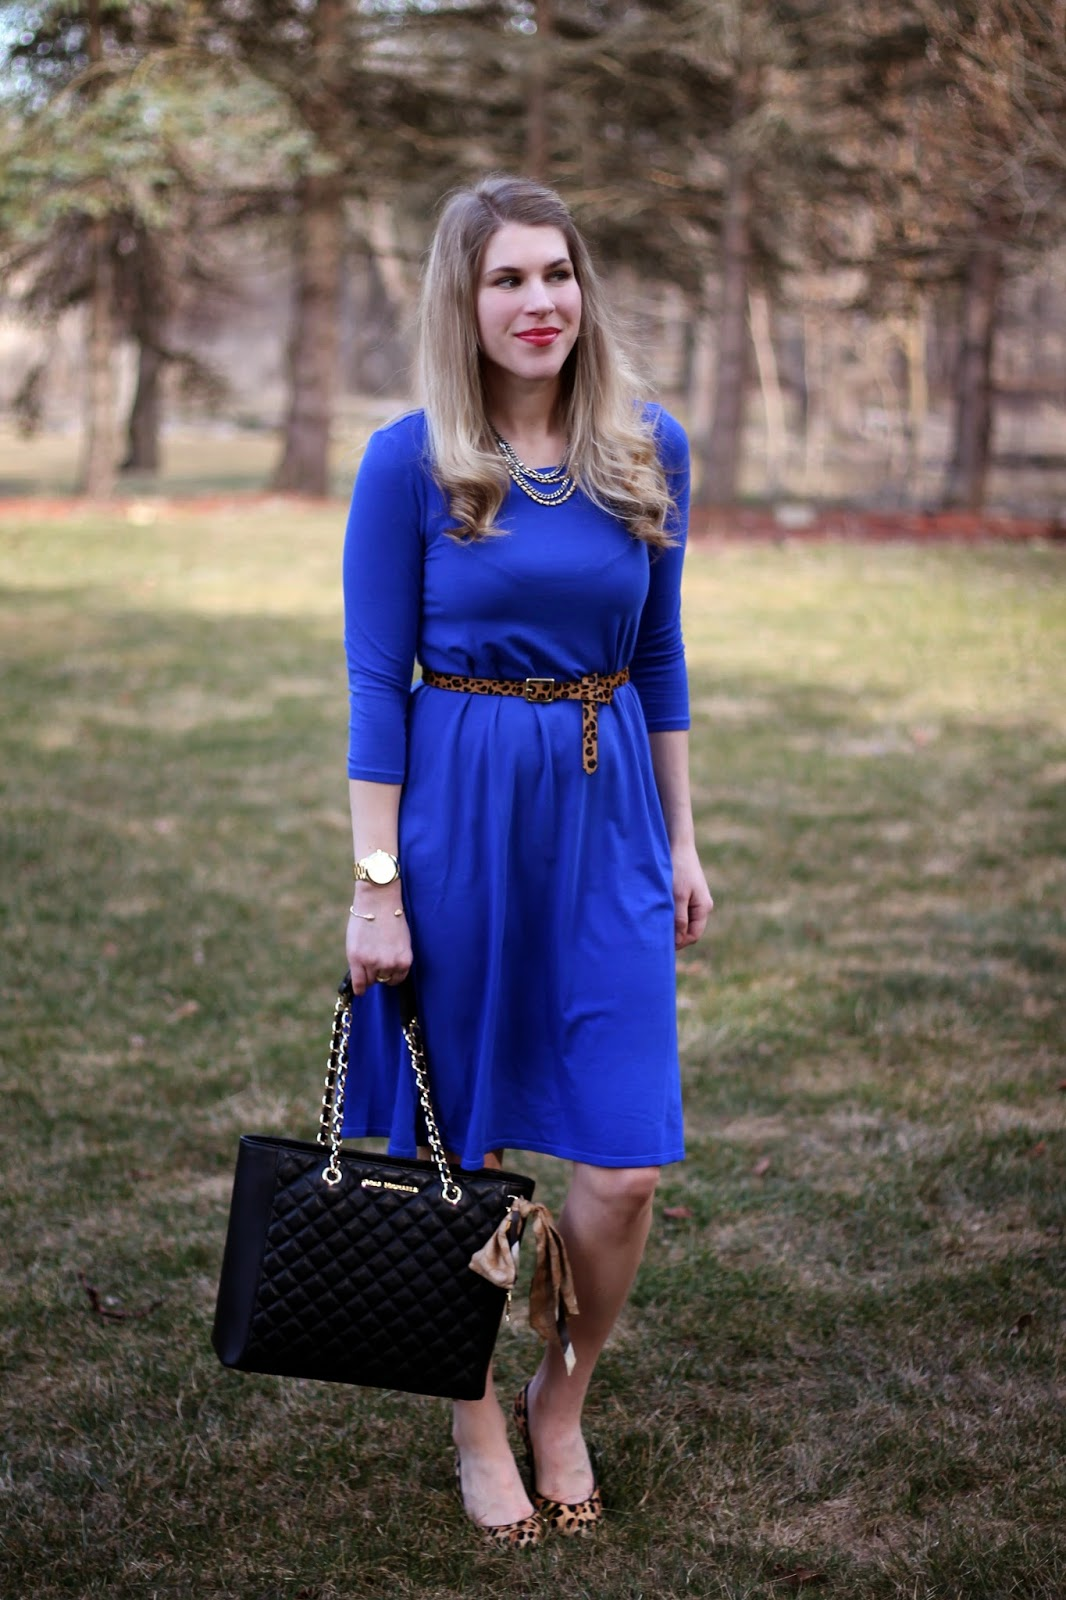 kika cobalt blue dress leopard heels and belt